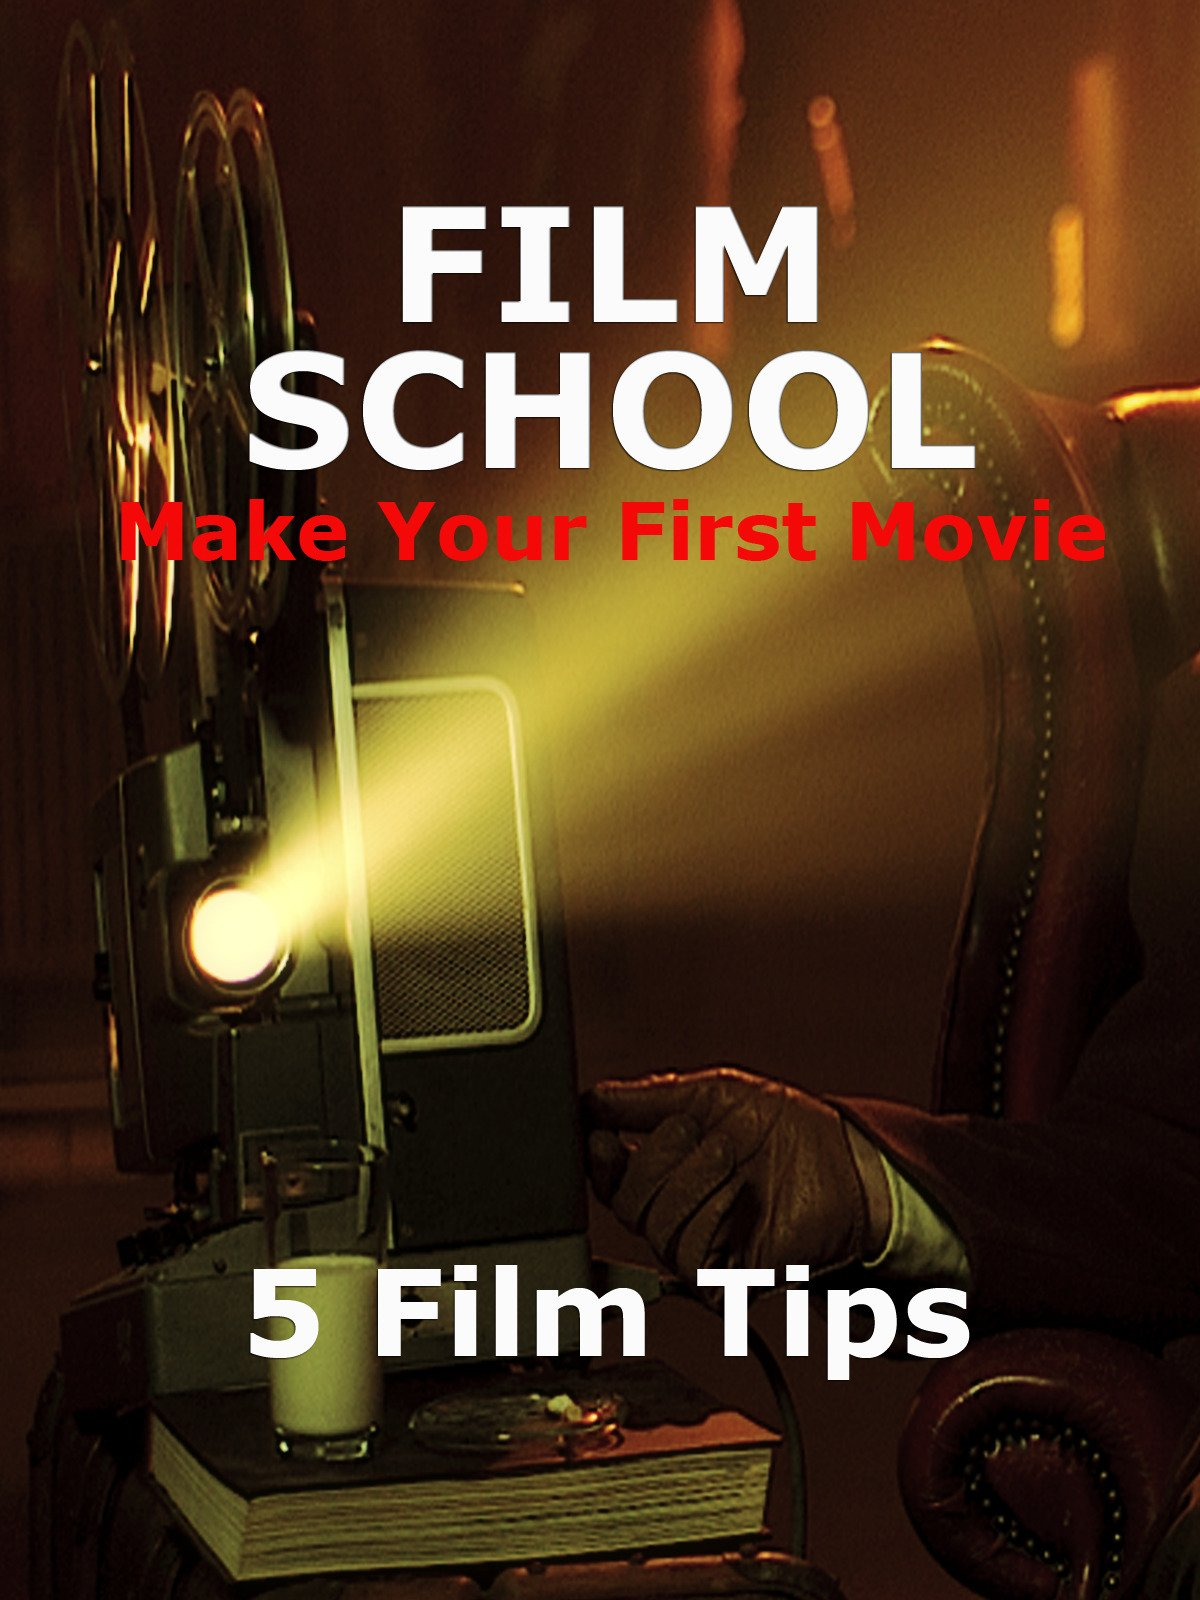 Film School 5 Film Tips